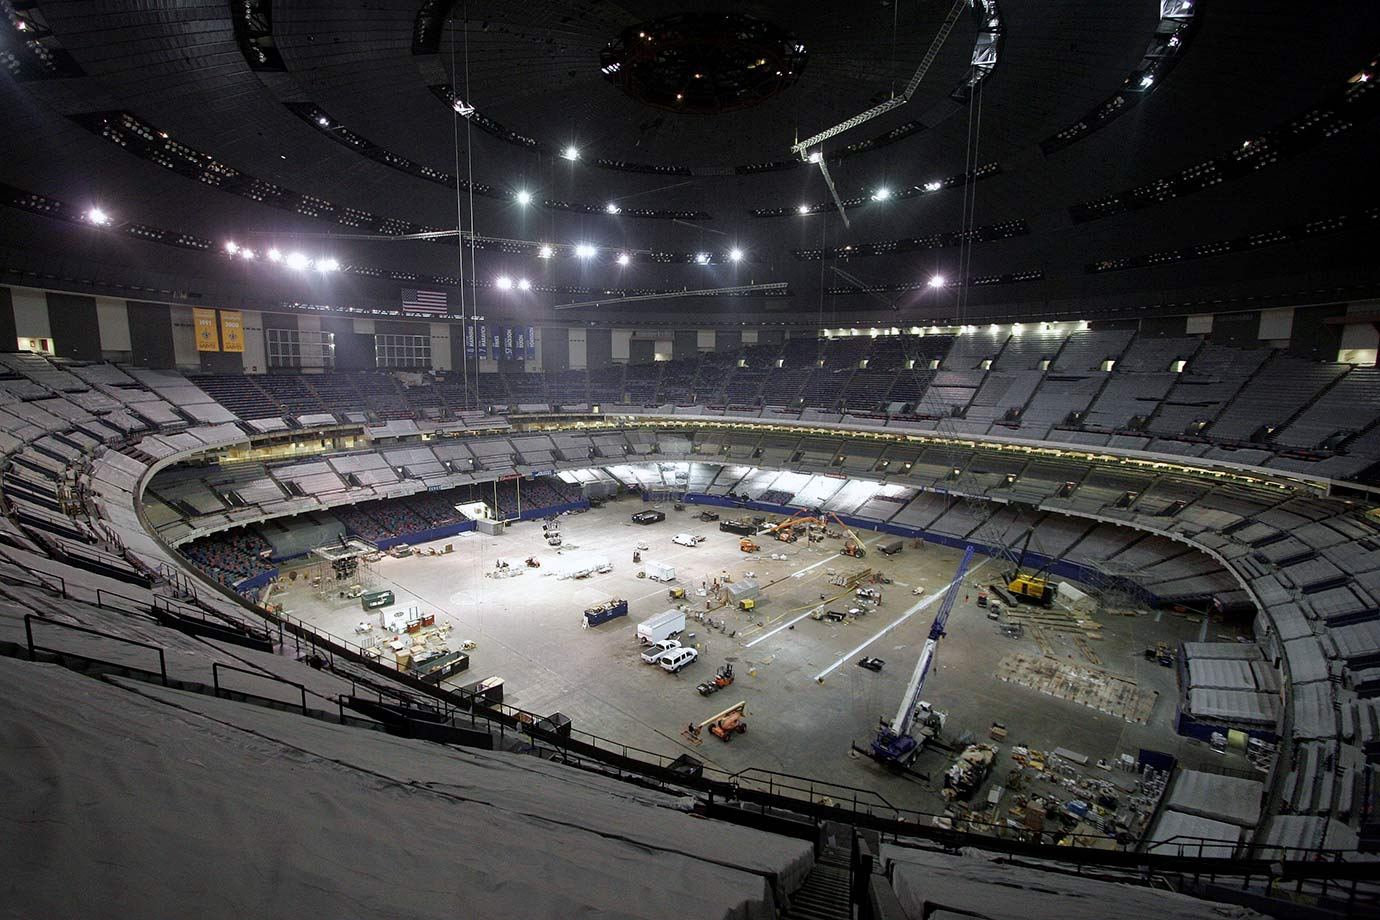 Aug. 8, 2006: Repairs and renovation work is still being done on the Superdome.